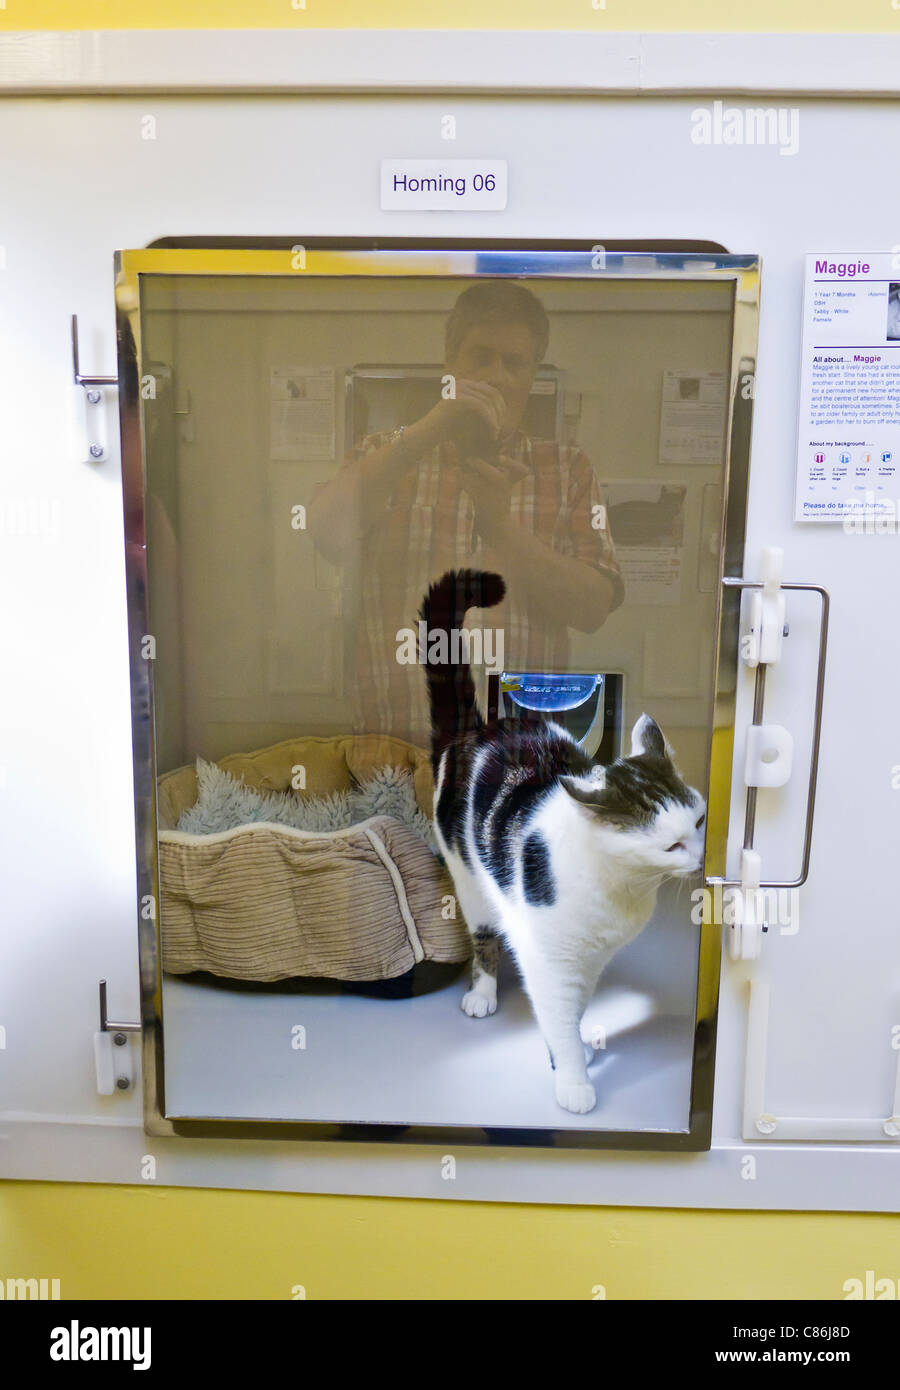 Young Maggie the cat waits to be adopted at the cats protection league adoption centre in Downham Market, Norfolk. - Stock Image